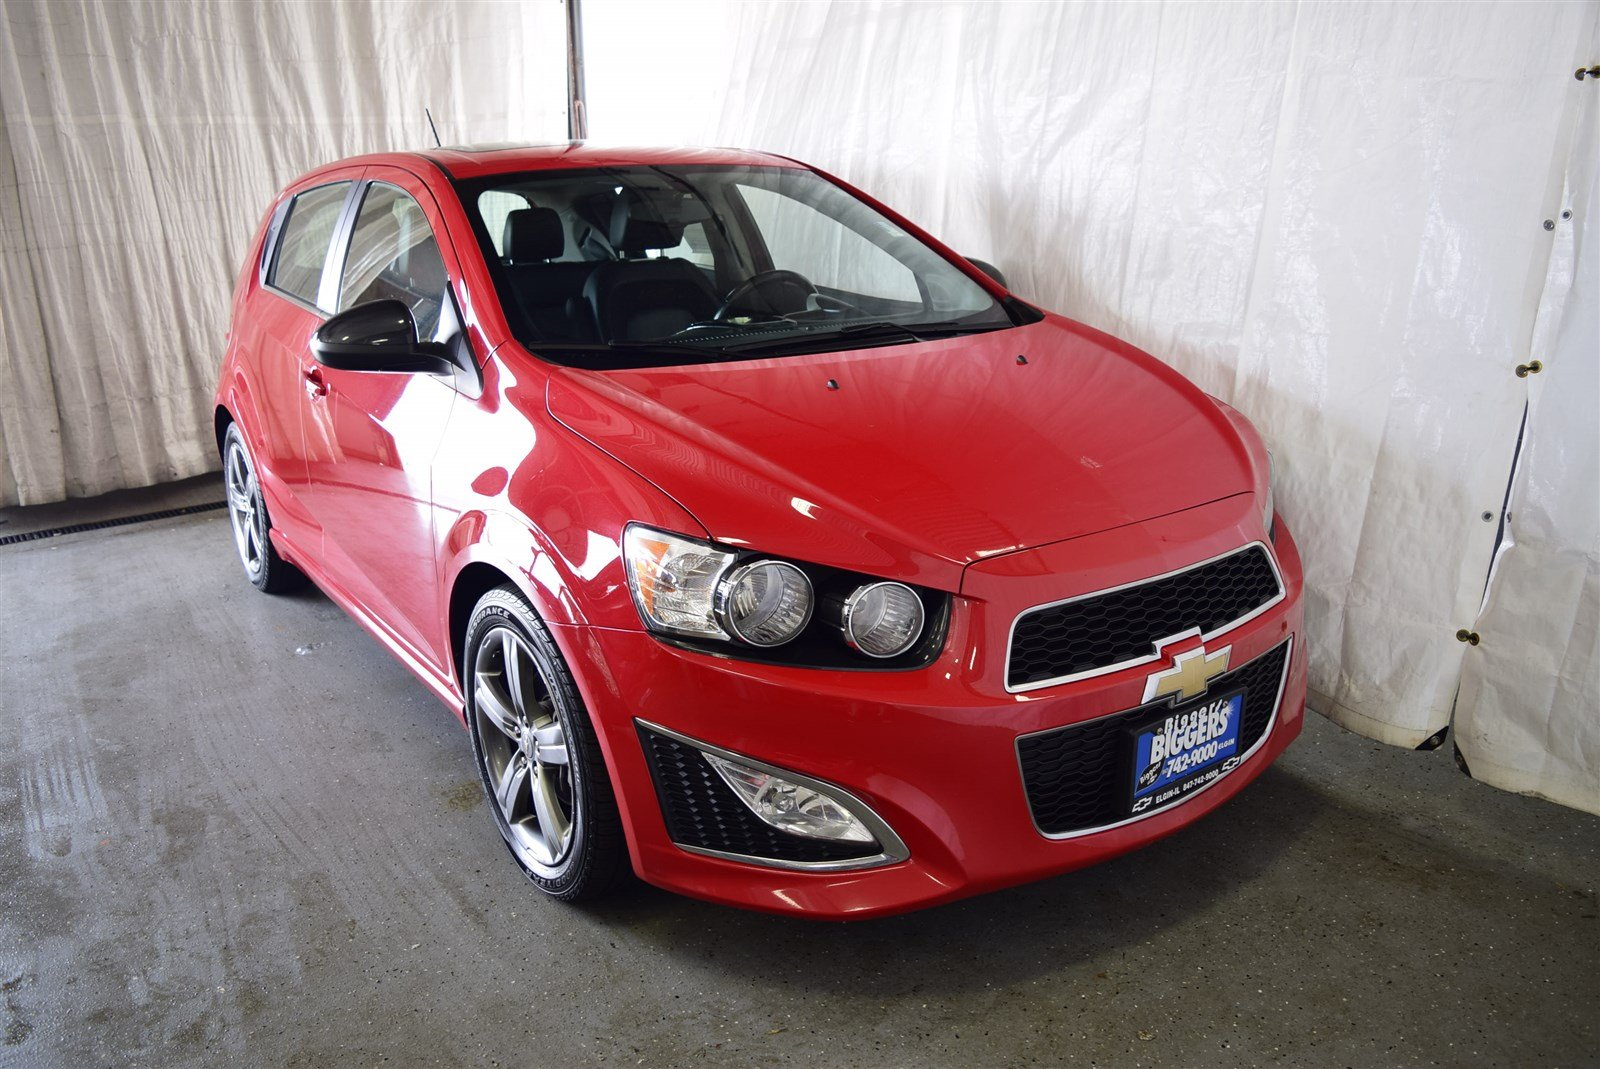 Chevrolet Sonic Owners Manual: Top Tether Anchor